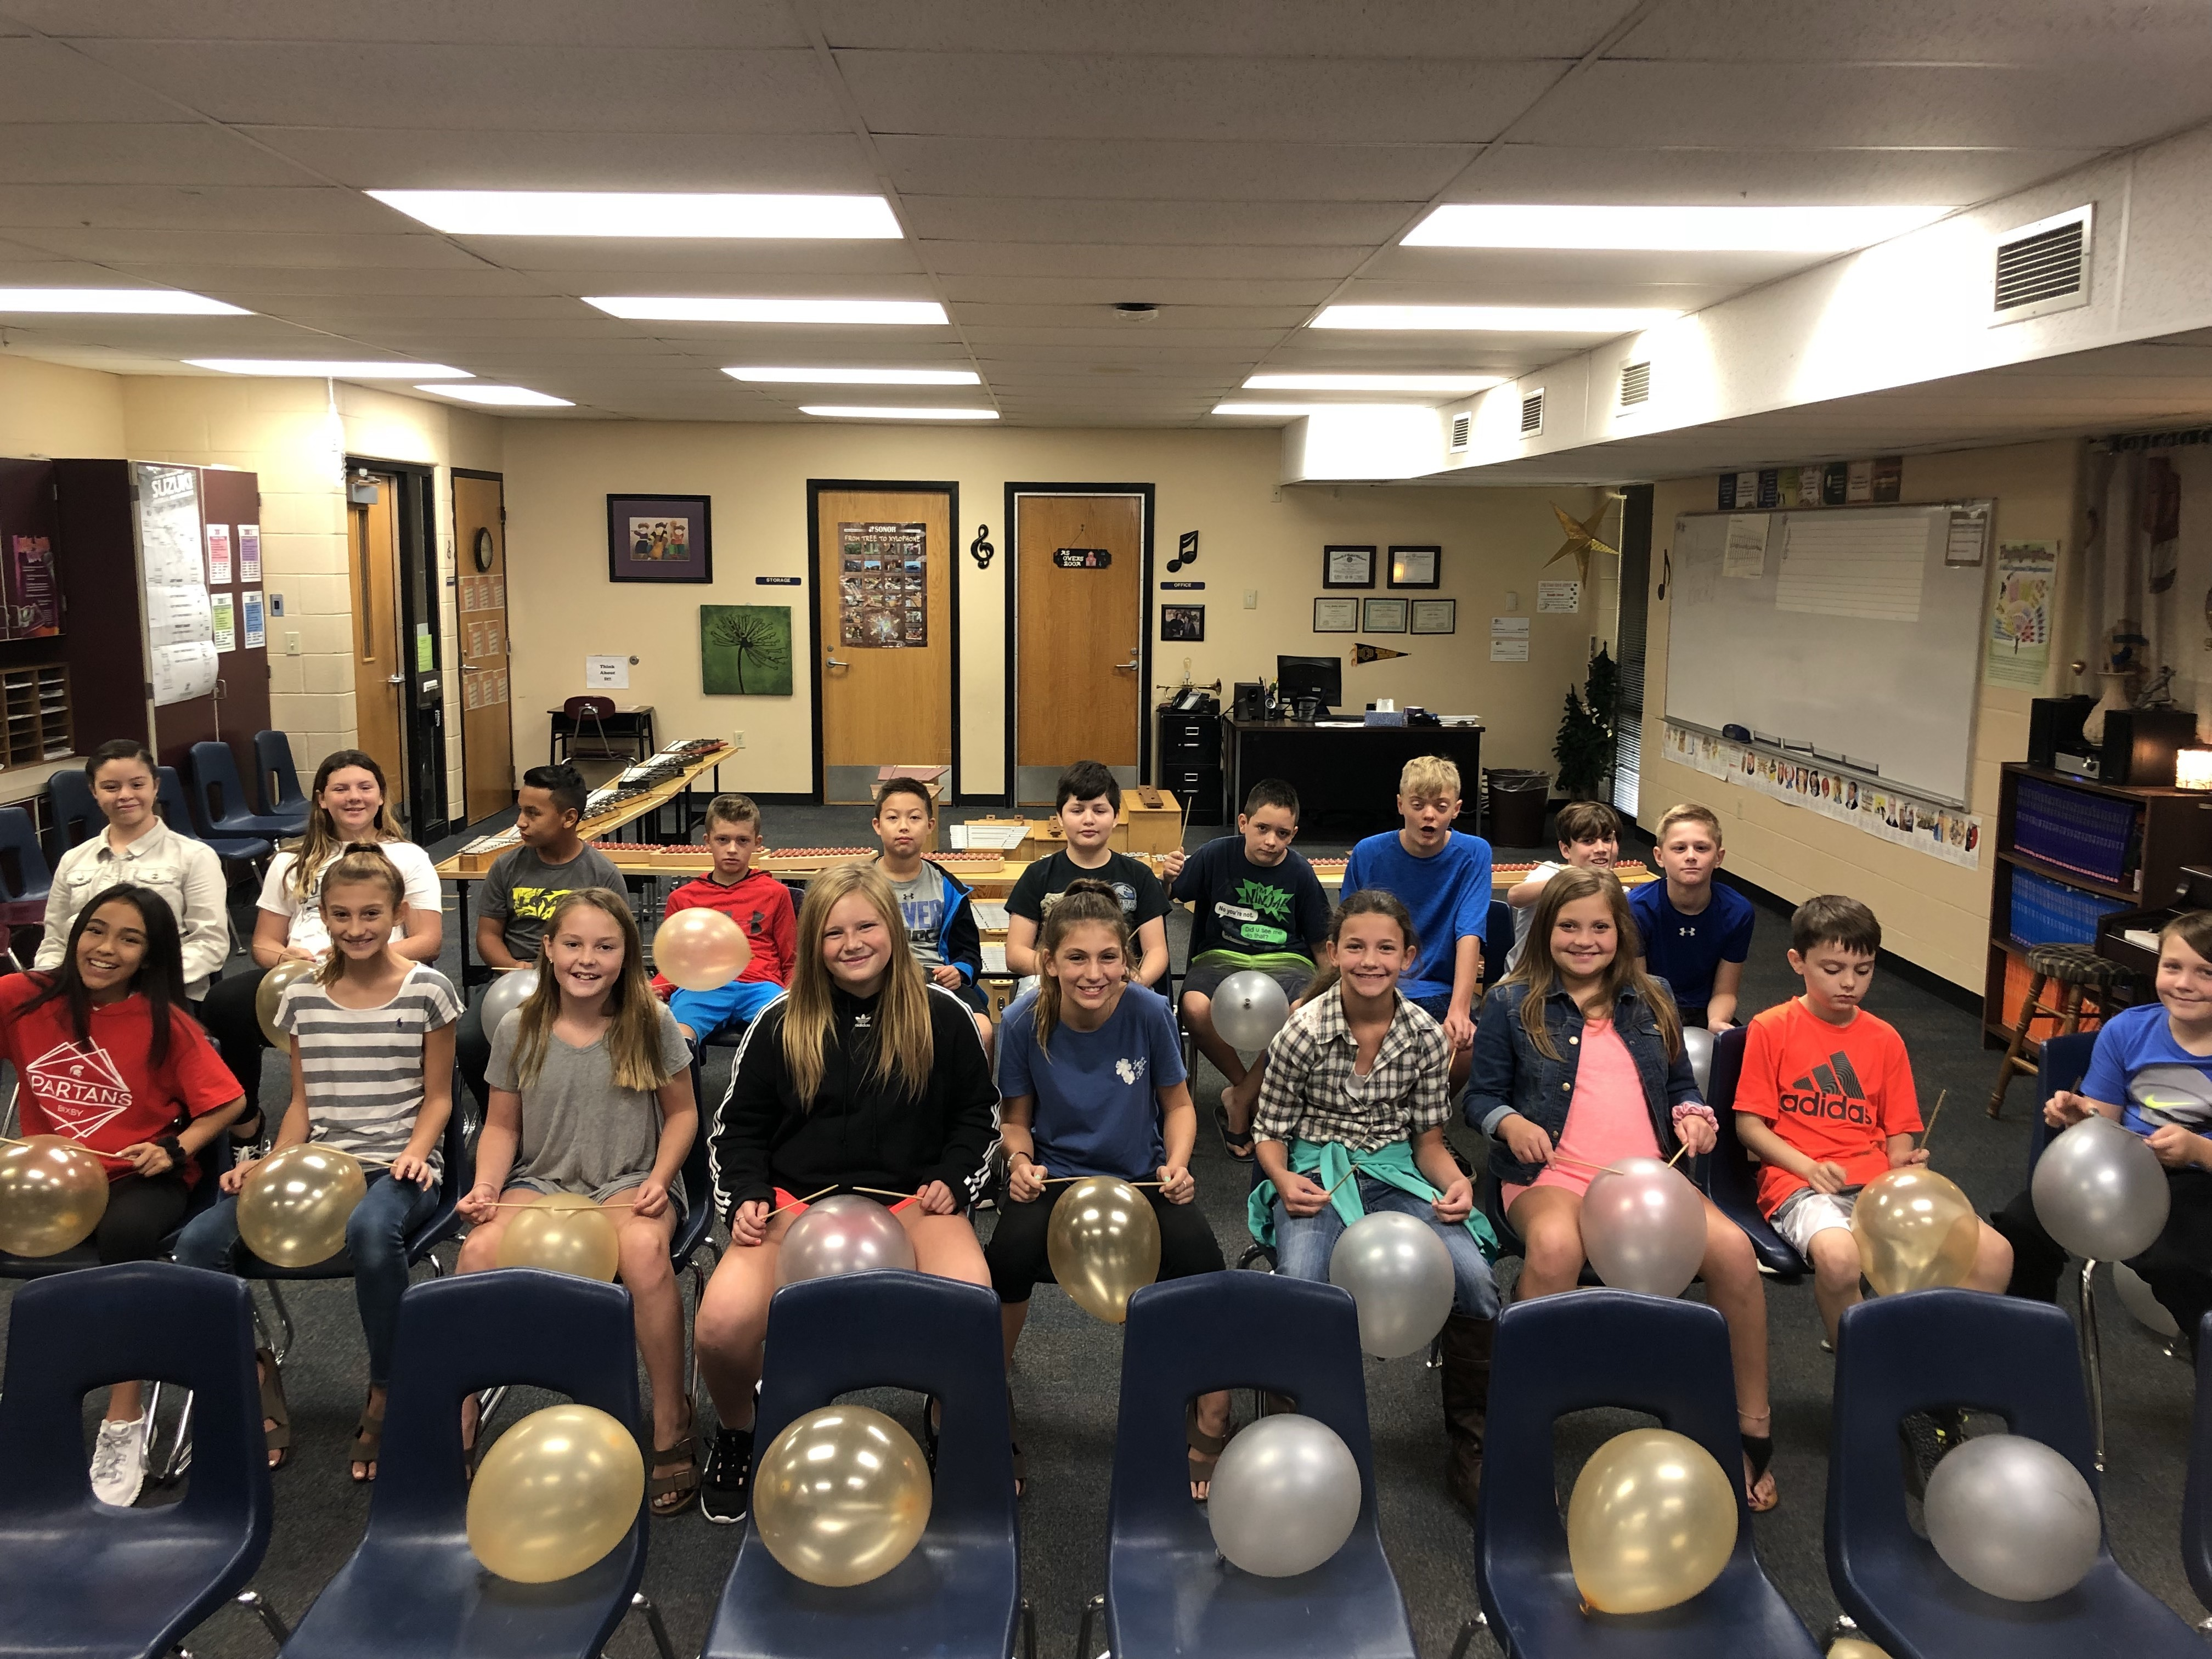 6th grade is learning read rhythms on the board and apply what they learn by playing the rhythms on a balloon with chopsticks.  The activity teaches them to sight read music notation, play as an ensemble, and to use control when playing their instrument so they don't pop their balloons!